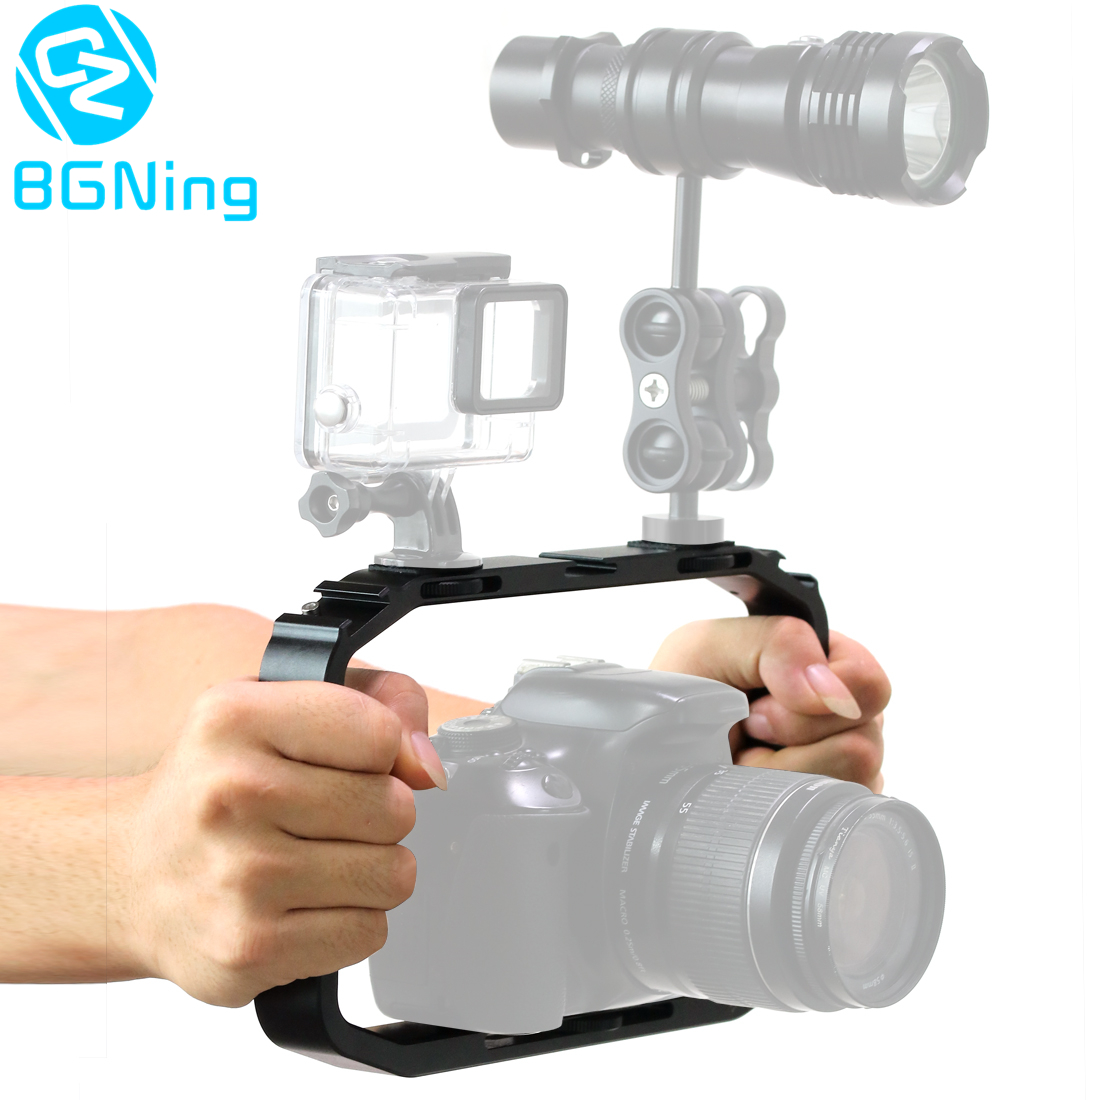 Handheld Camera Cage for DJI OSMO Action/YI/EKEN for Gopro 7 6 Smartphone Stand Holder Video Vlog Grip Stabilizer Rig Bracket